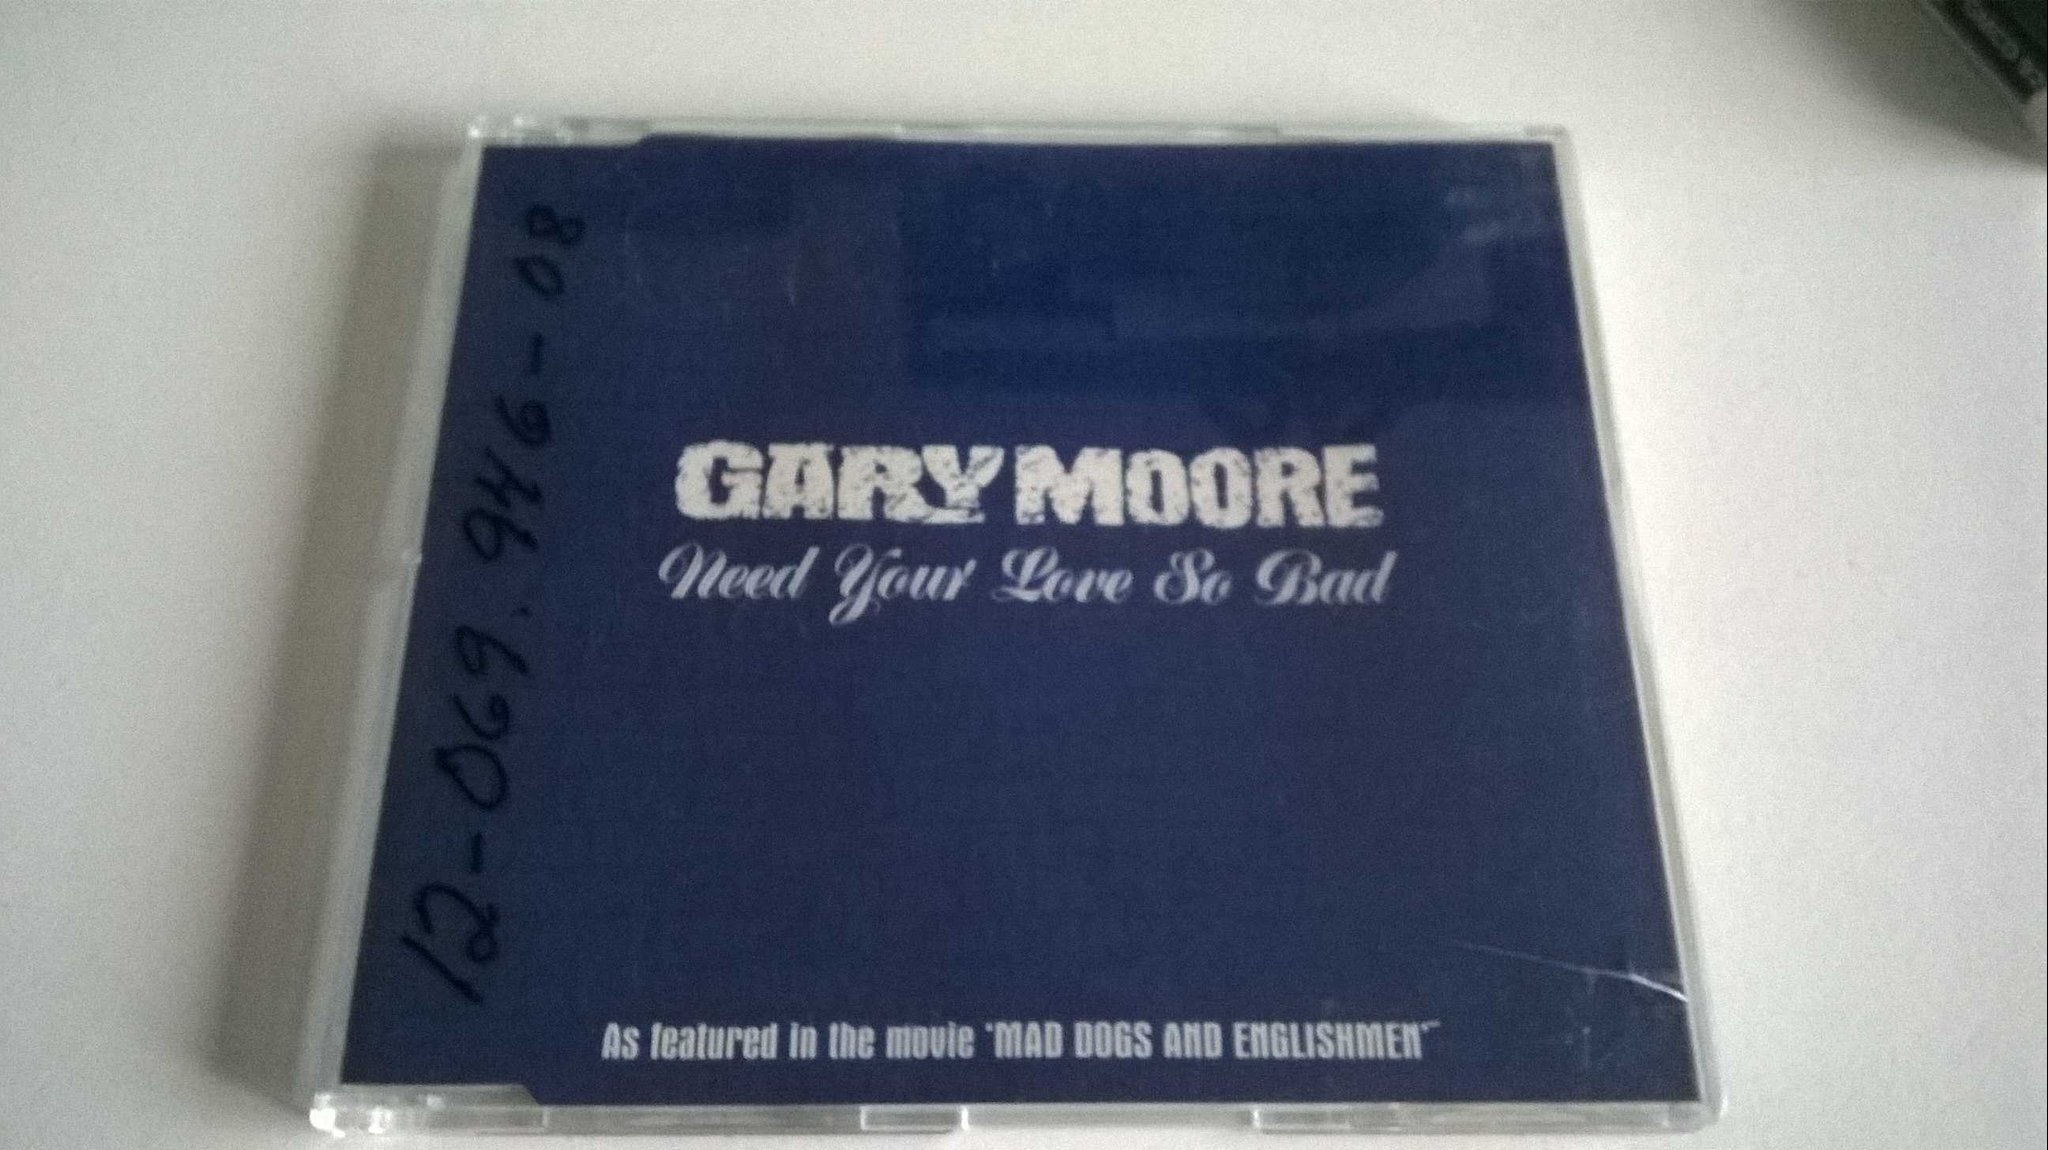 Gary Moore - Need Your Love So Bad, CD